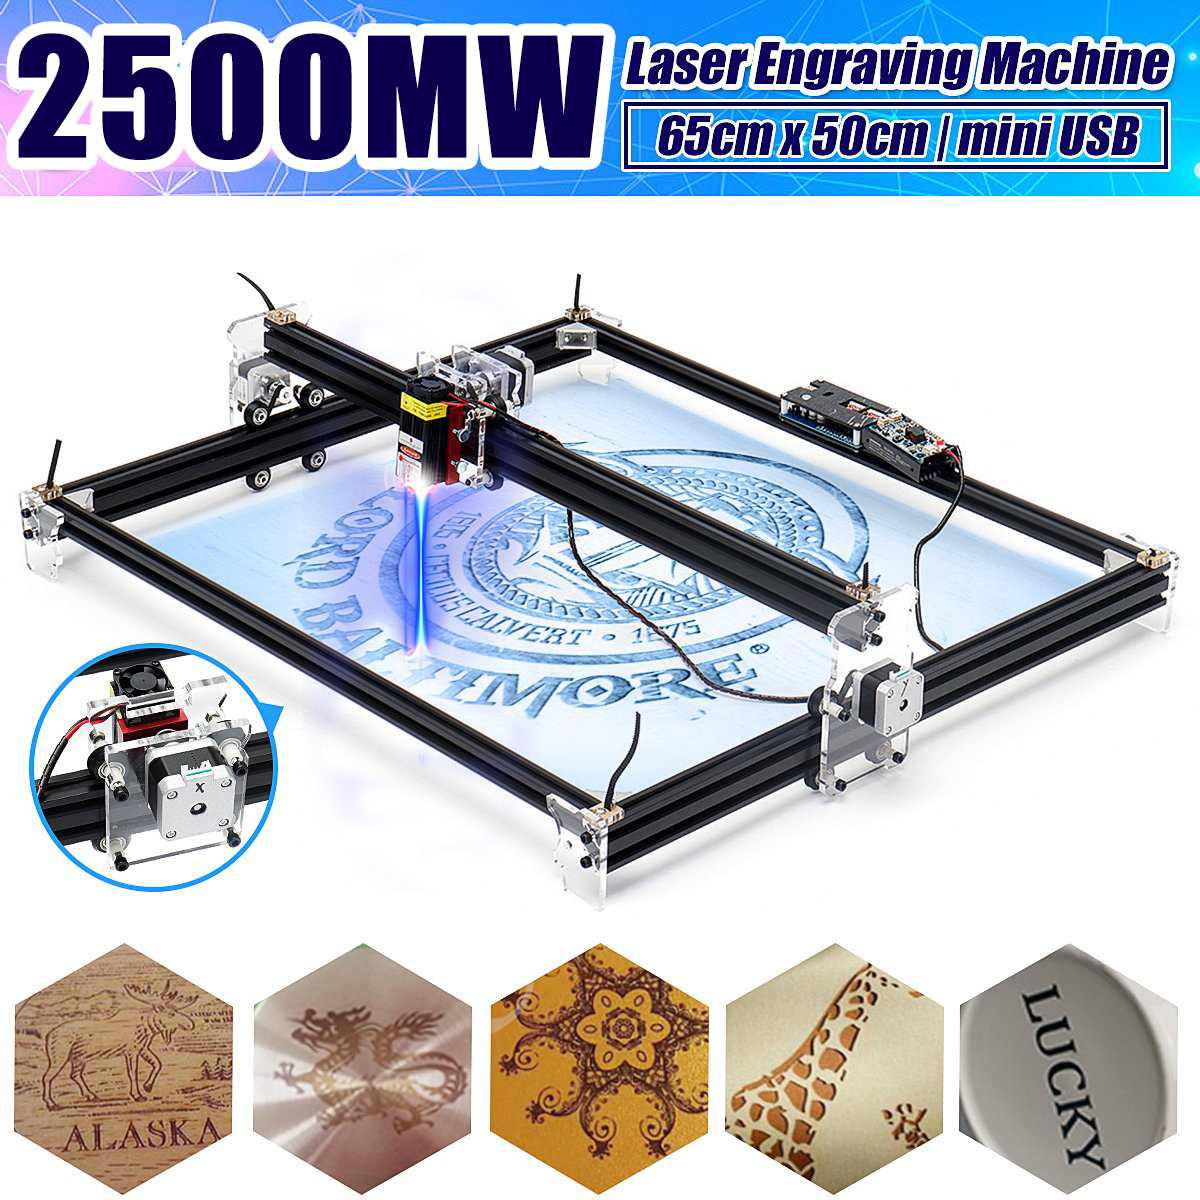 2500mW Professional 65*50cm Automatic Desktop Mini CNC Laser Engraver Cutter Home DIY Tool Engraving Wood Cutting Machine Router2500mW Professional 65*50cm Automatic Desktop Mini CNC Laser Engraver Cutter Home DIY Tool Engraving Wood Cutting Machine Router